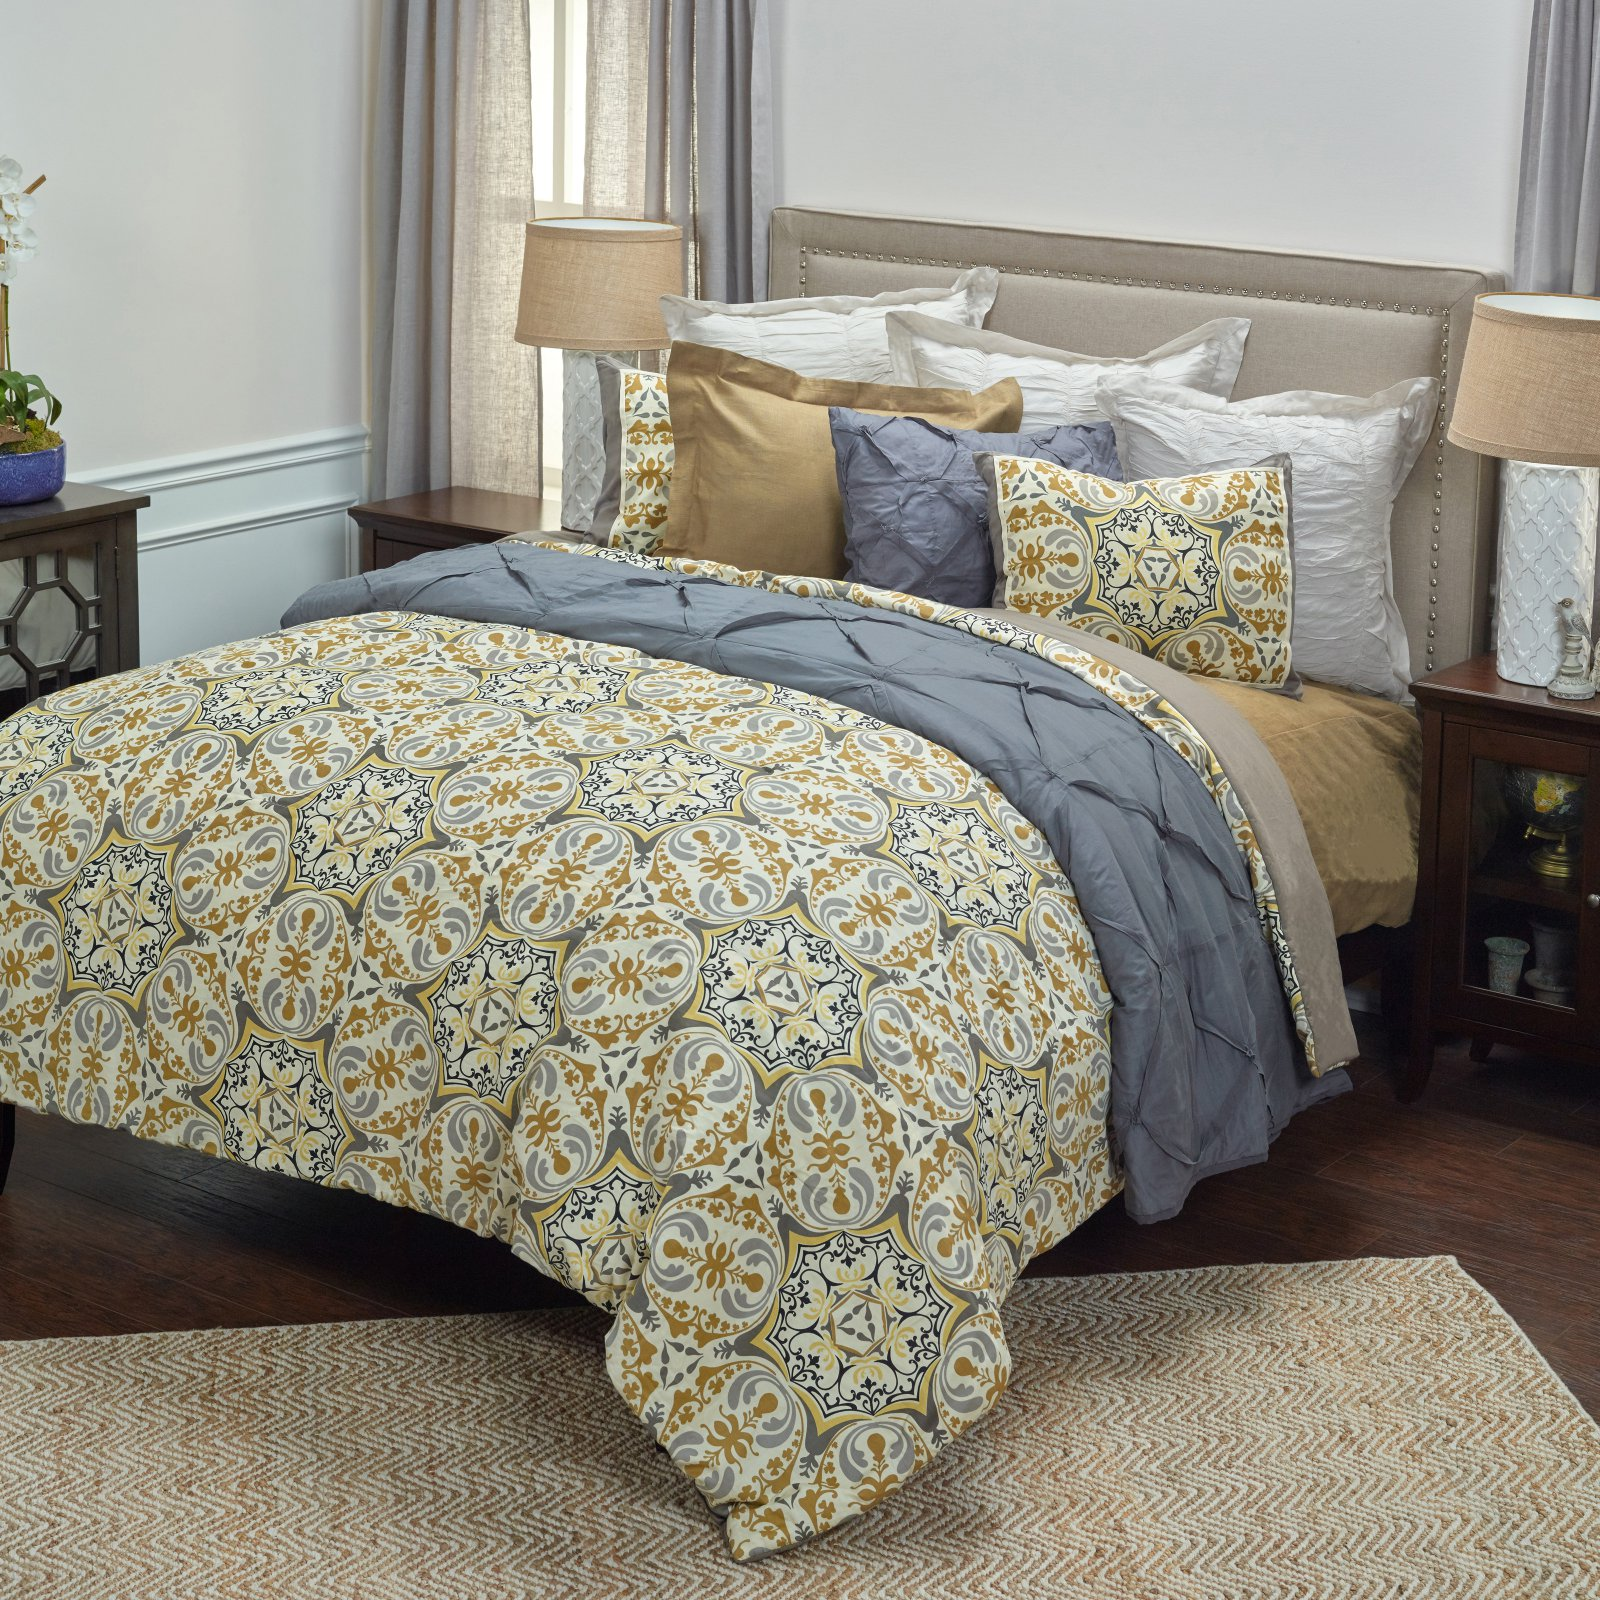 Rizzy Home Tradewinds Queen Size Comforter Set in Grey Color